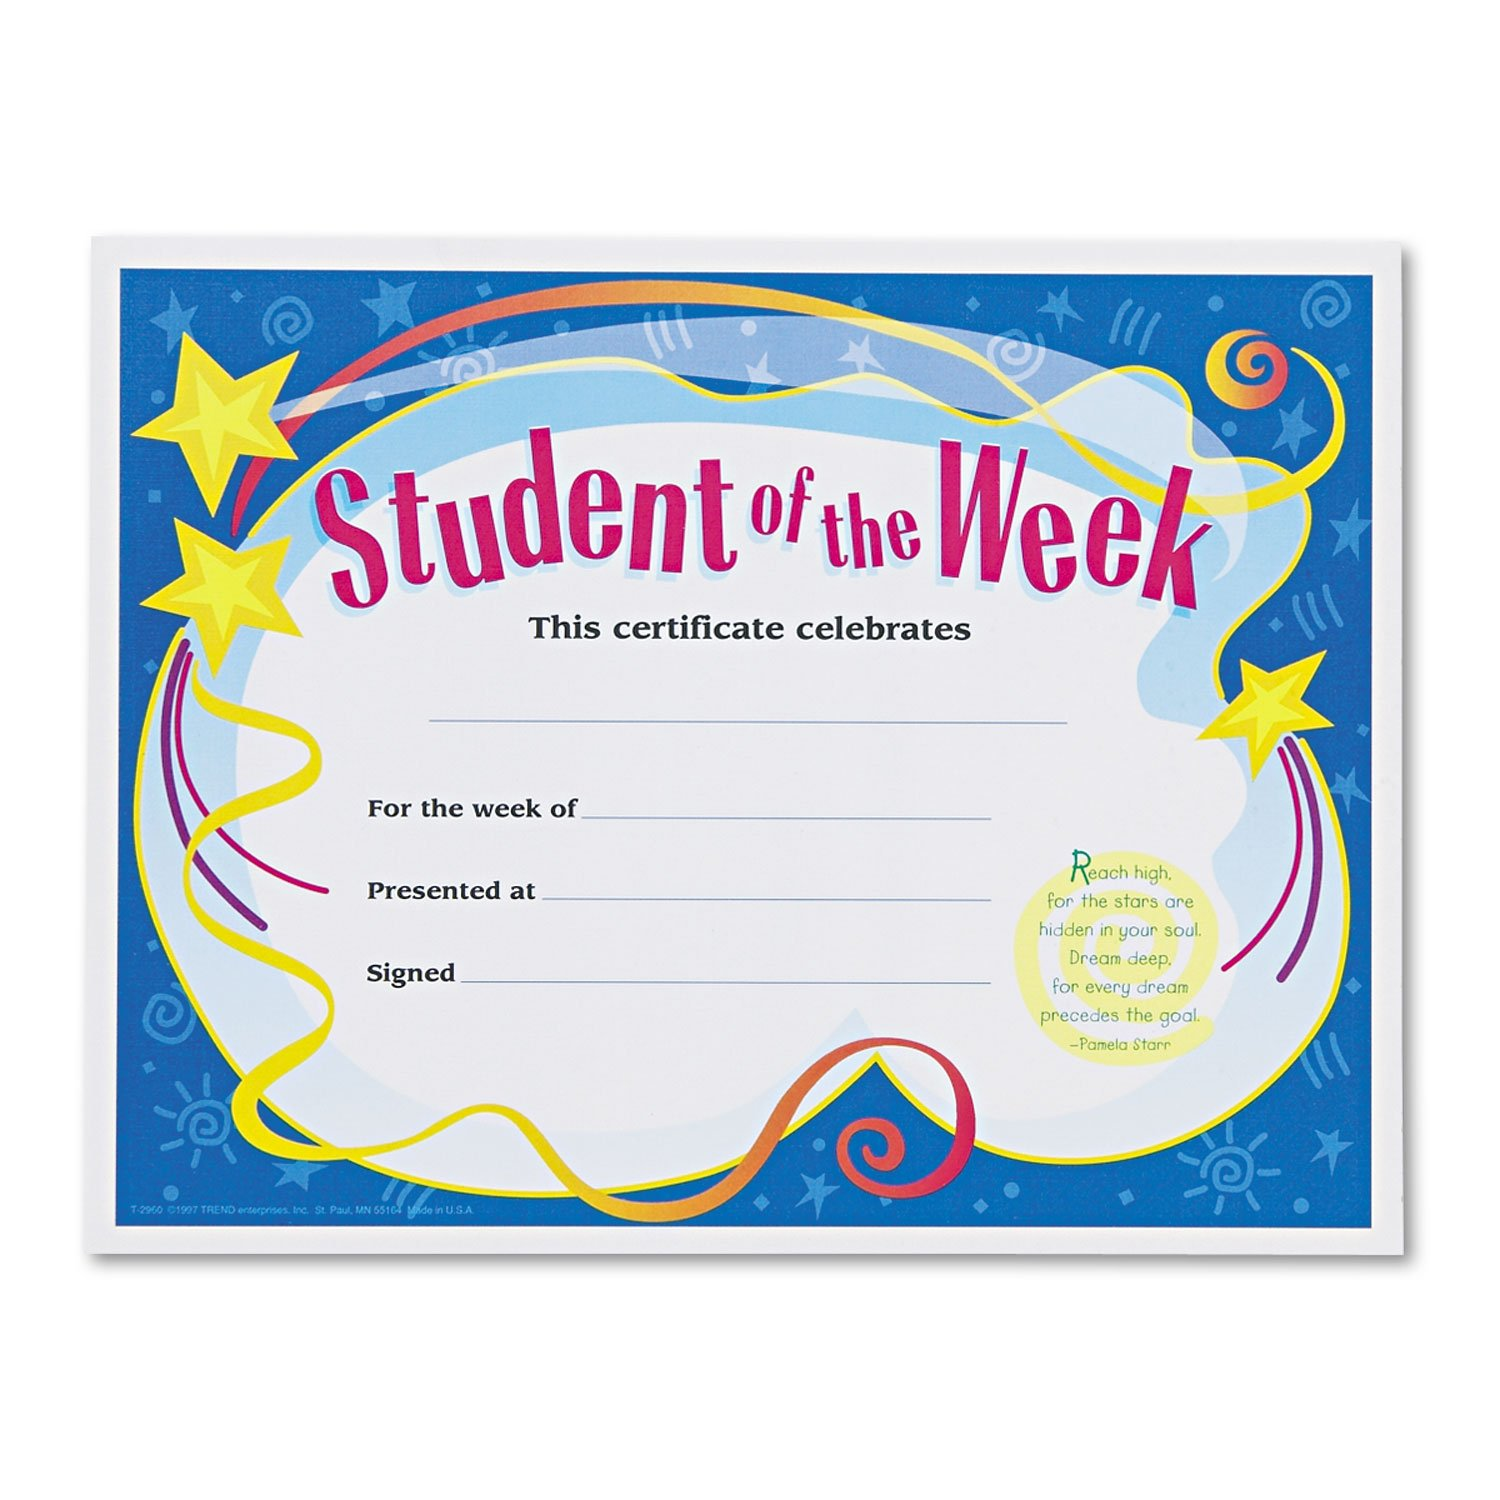 Amazon trend t2960 student of the week certificates 8 12 x amazon trend t2960 student of the week certificates 8 12 x 11 white border 30pack tept2960 toys games xflitez Choice Image